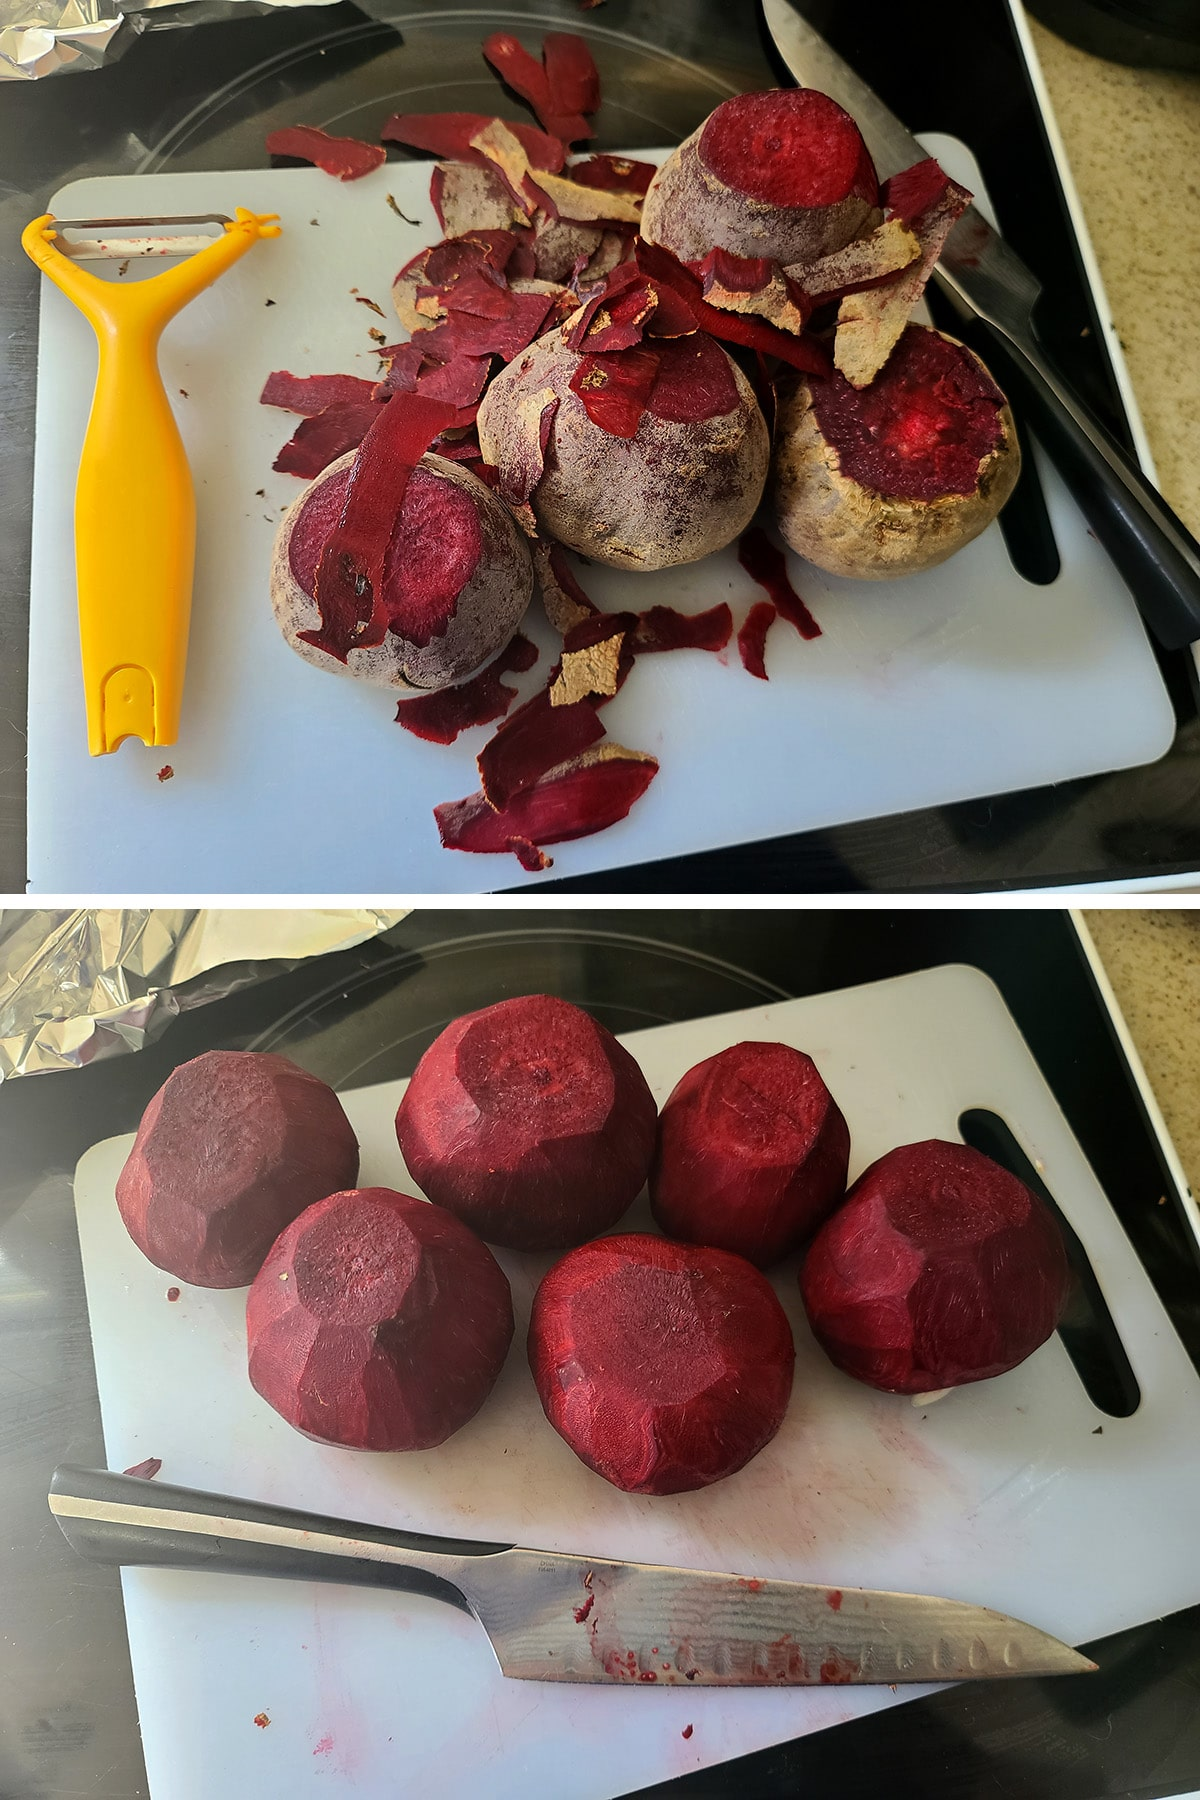 A pile of peeled beets.